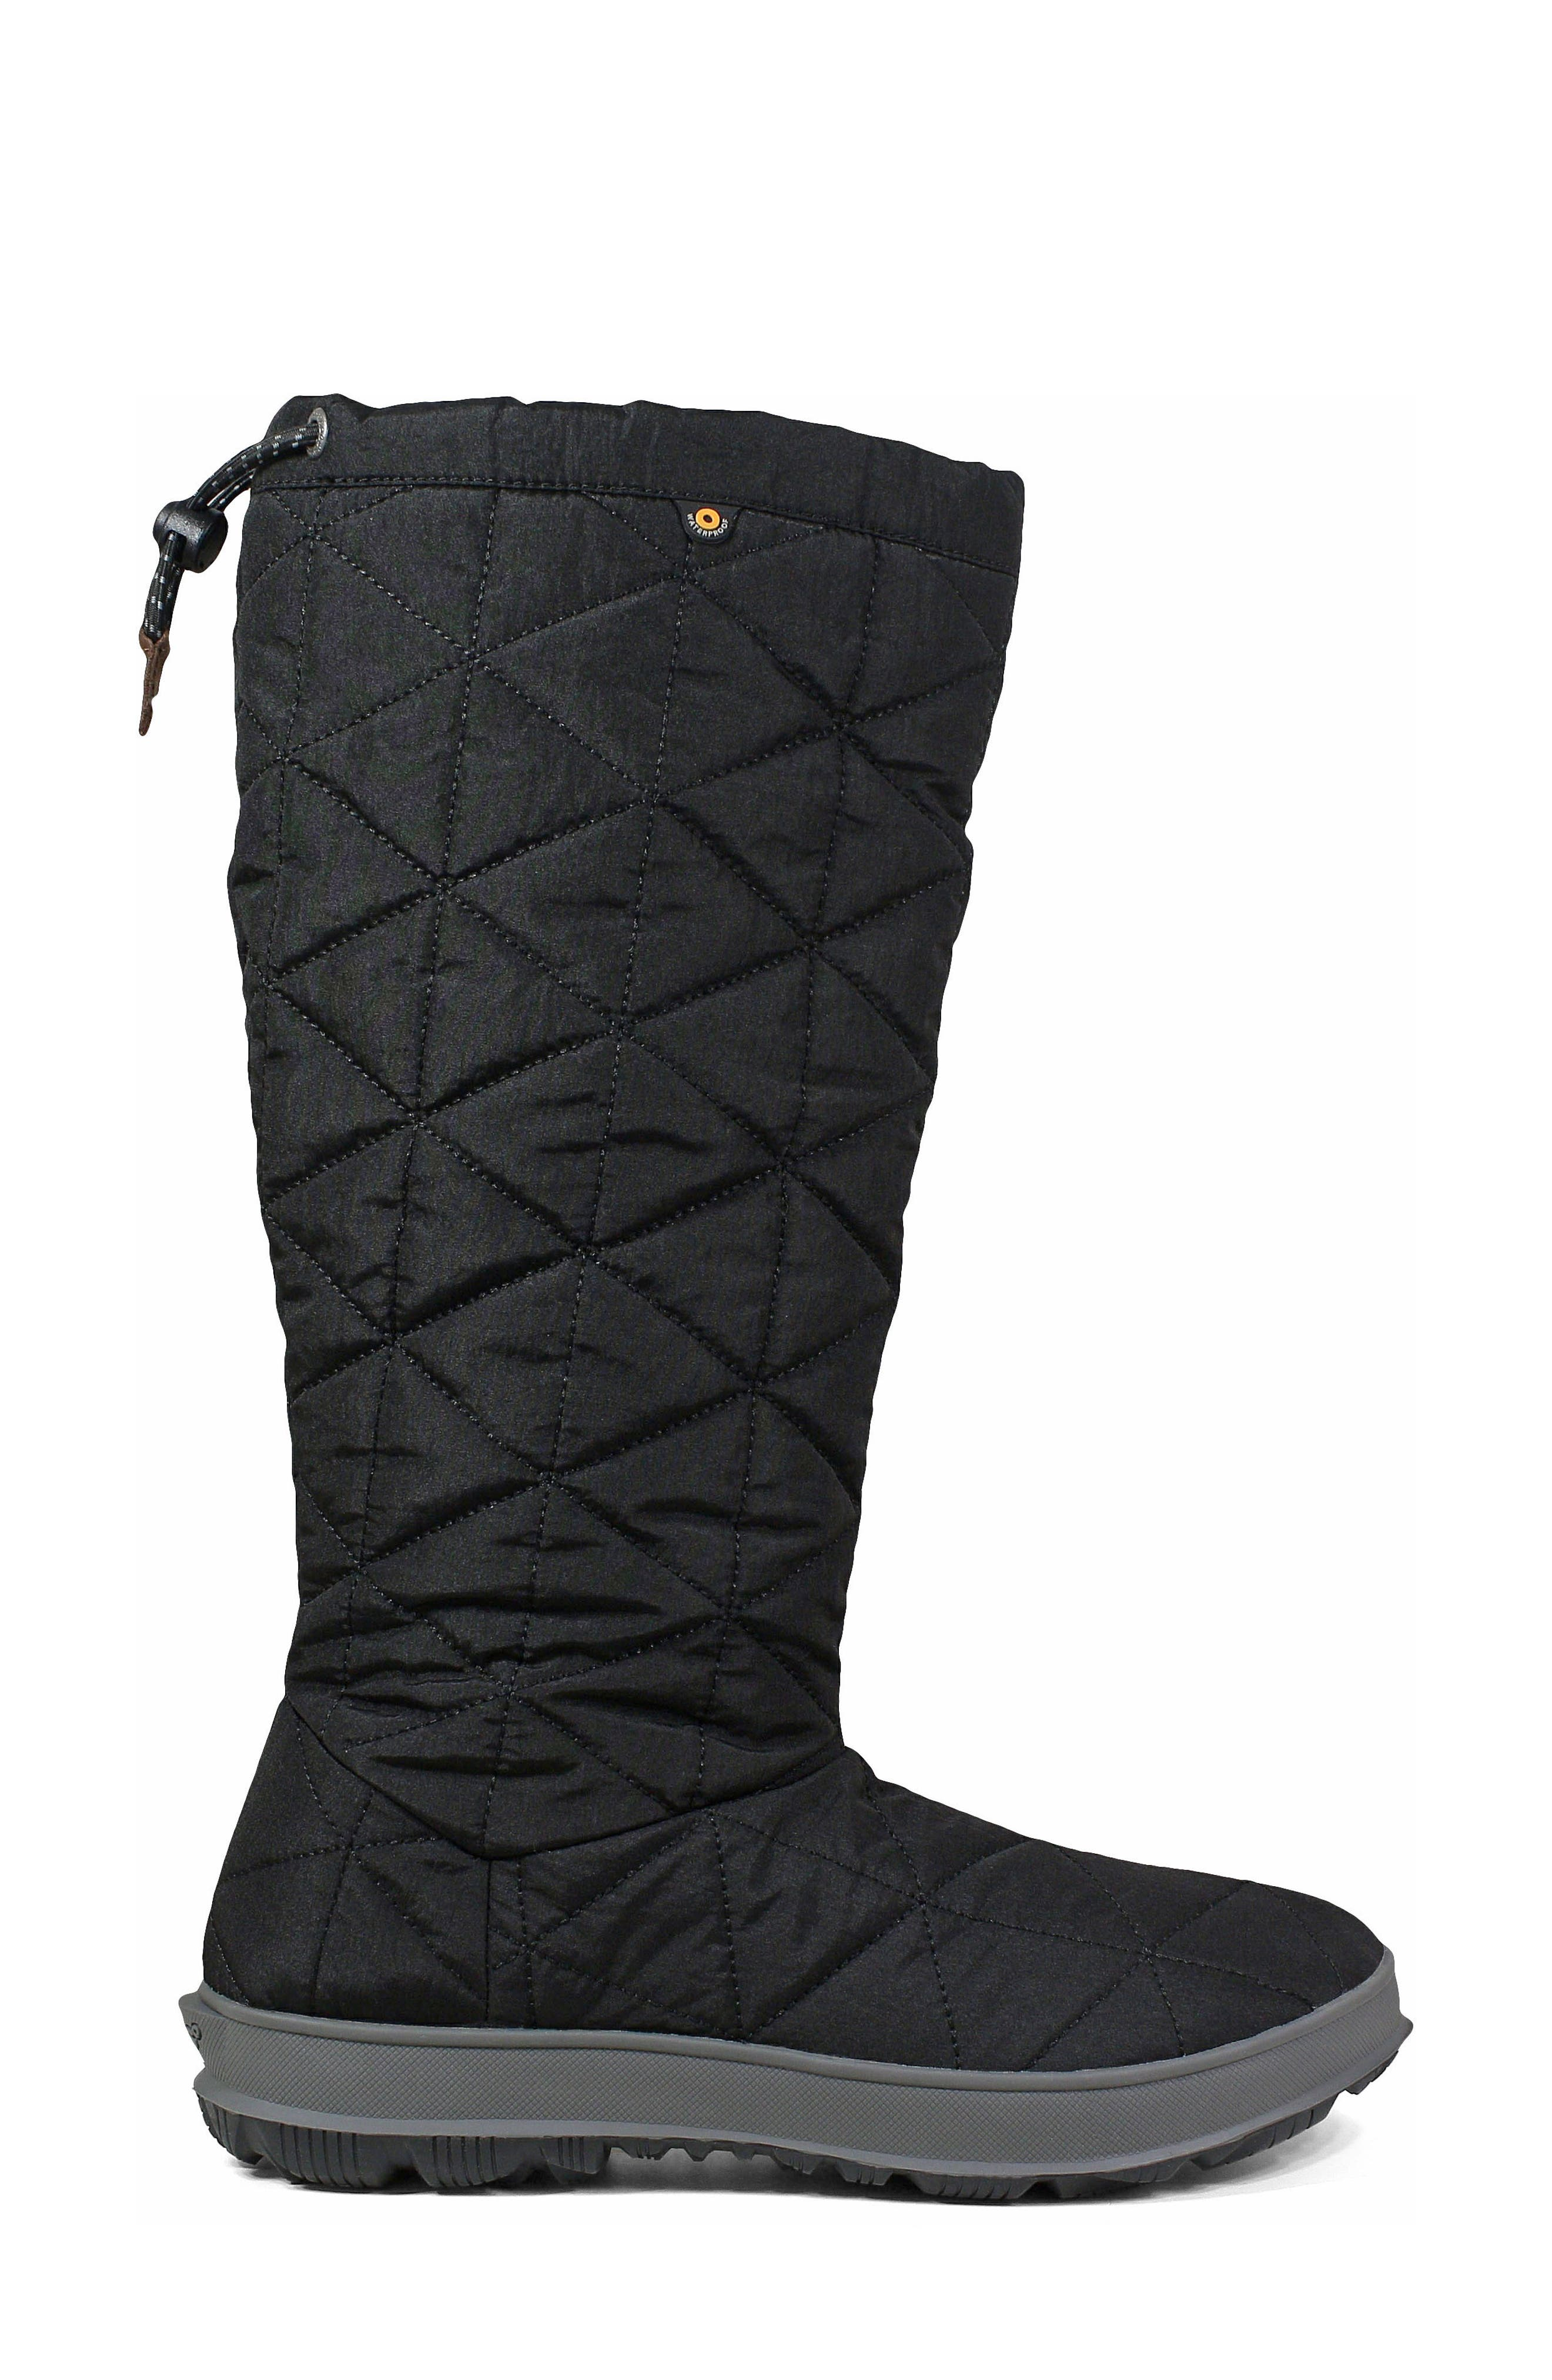 BOGS, Snowday Tall Waterproof Quilted Snow Boot, Alternate thumbnail 3, color, BLACK